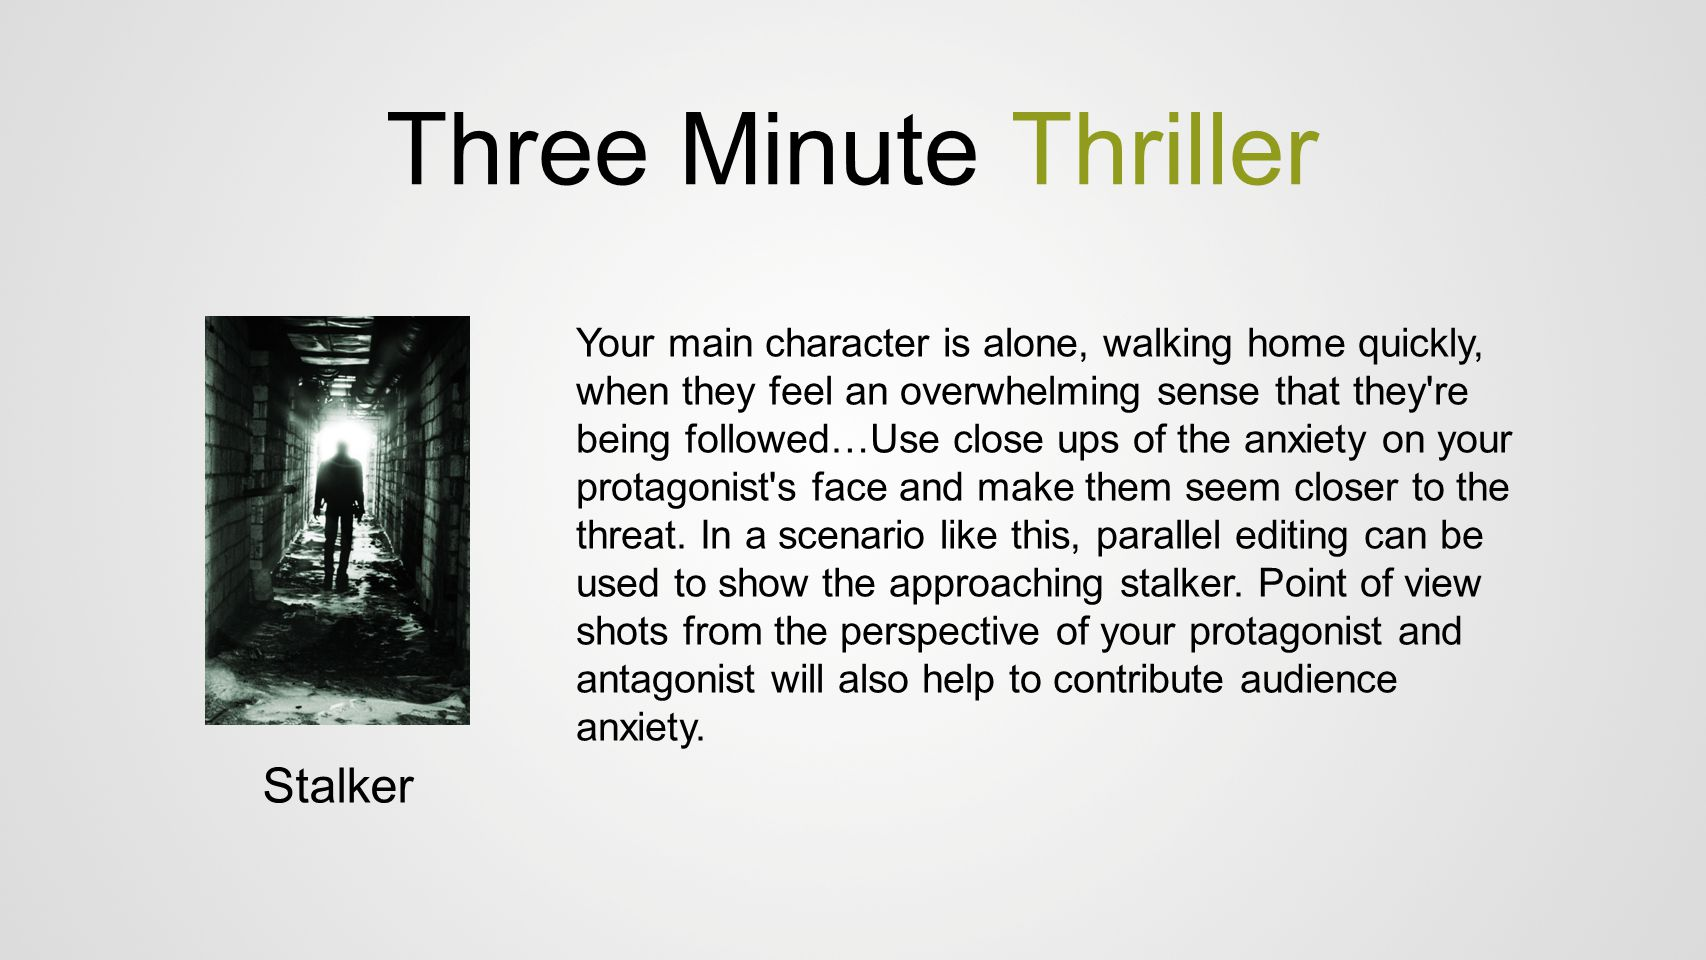 Three Minute Thriller Stalker Your main character is alone, walking home quickly, when they feel an overwhelming sense that they're being followed…Use